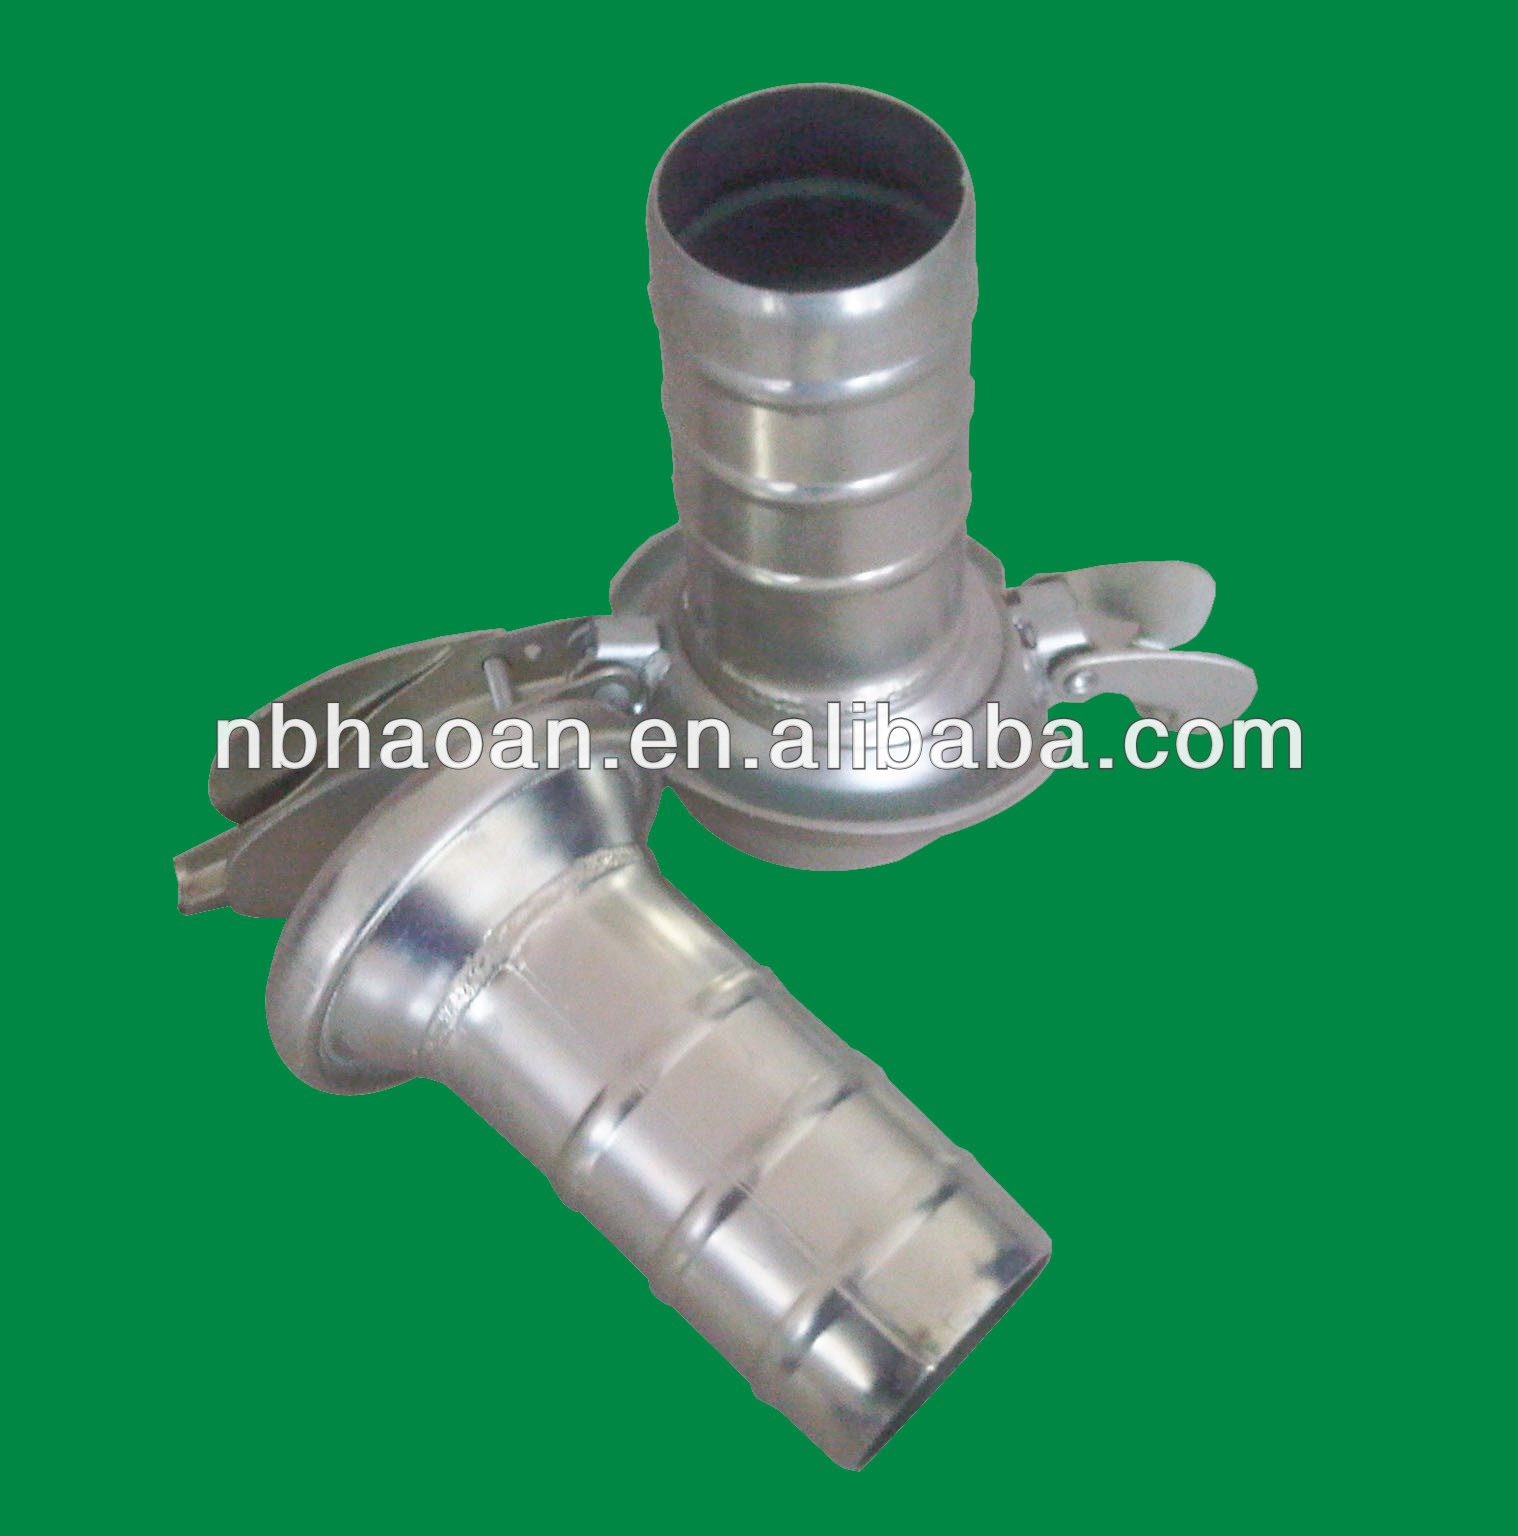 Plated Bauer Joint / Ball And Socket Coupling / Bauer Connector